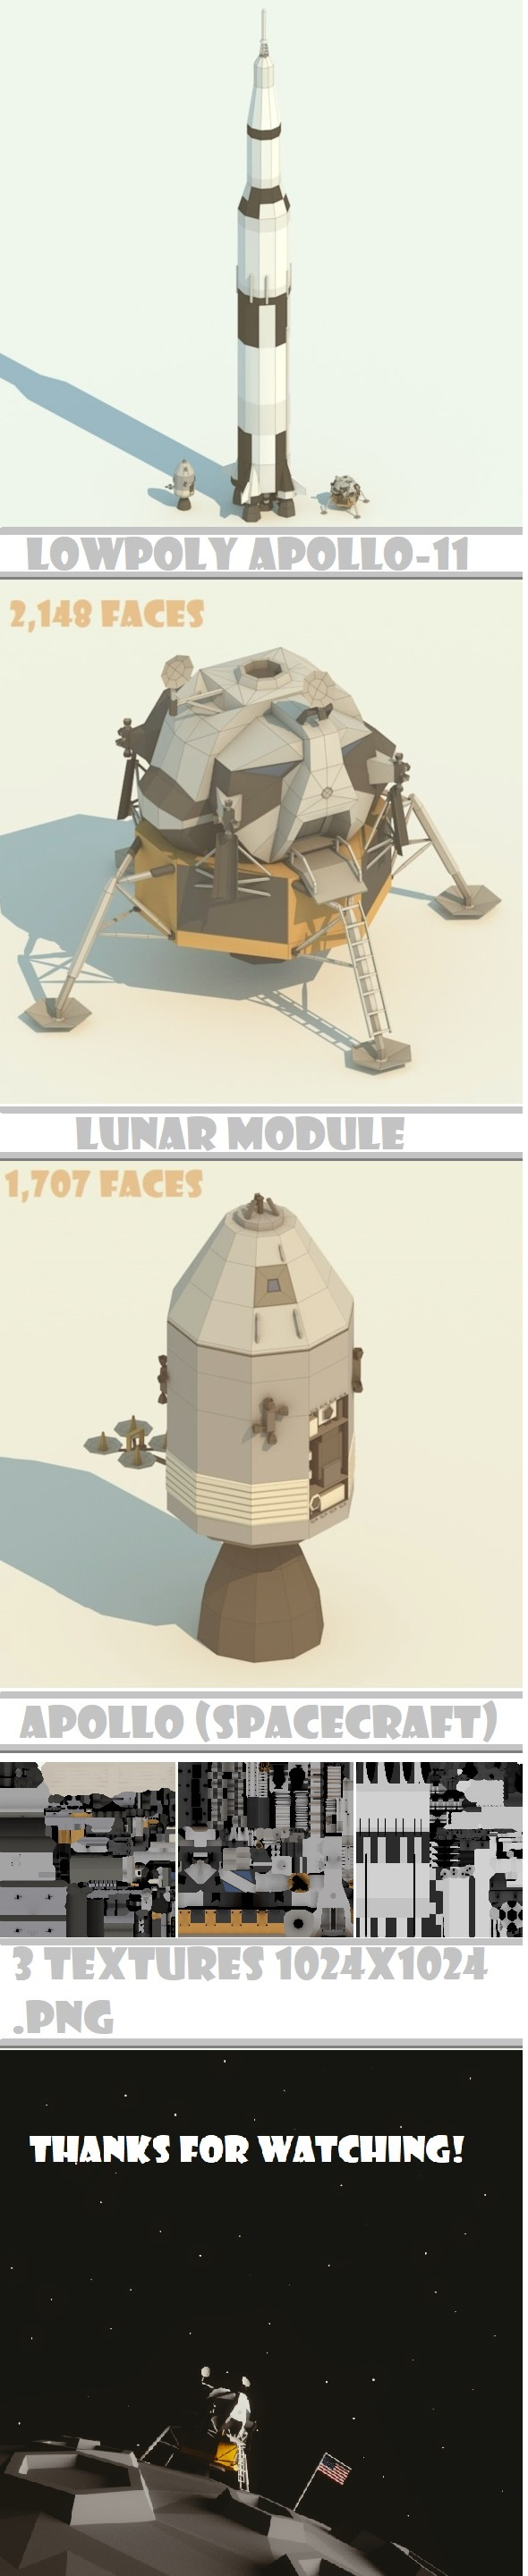 3DOcean Apollo-11 LowPoly models pack 20904970